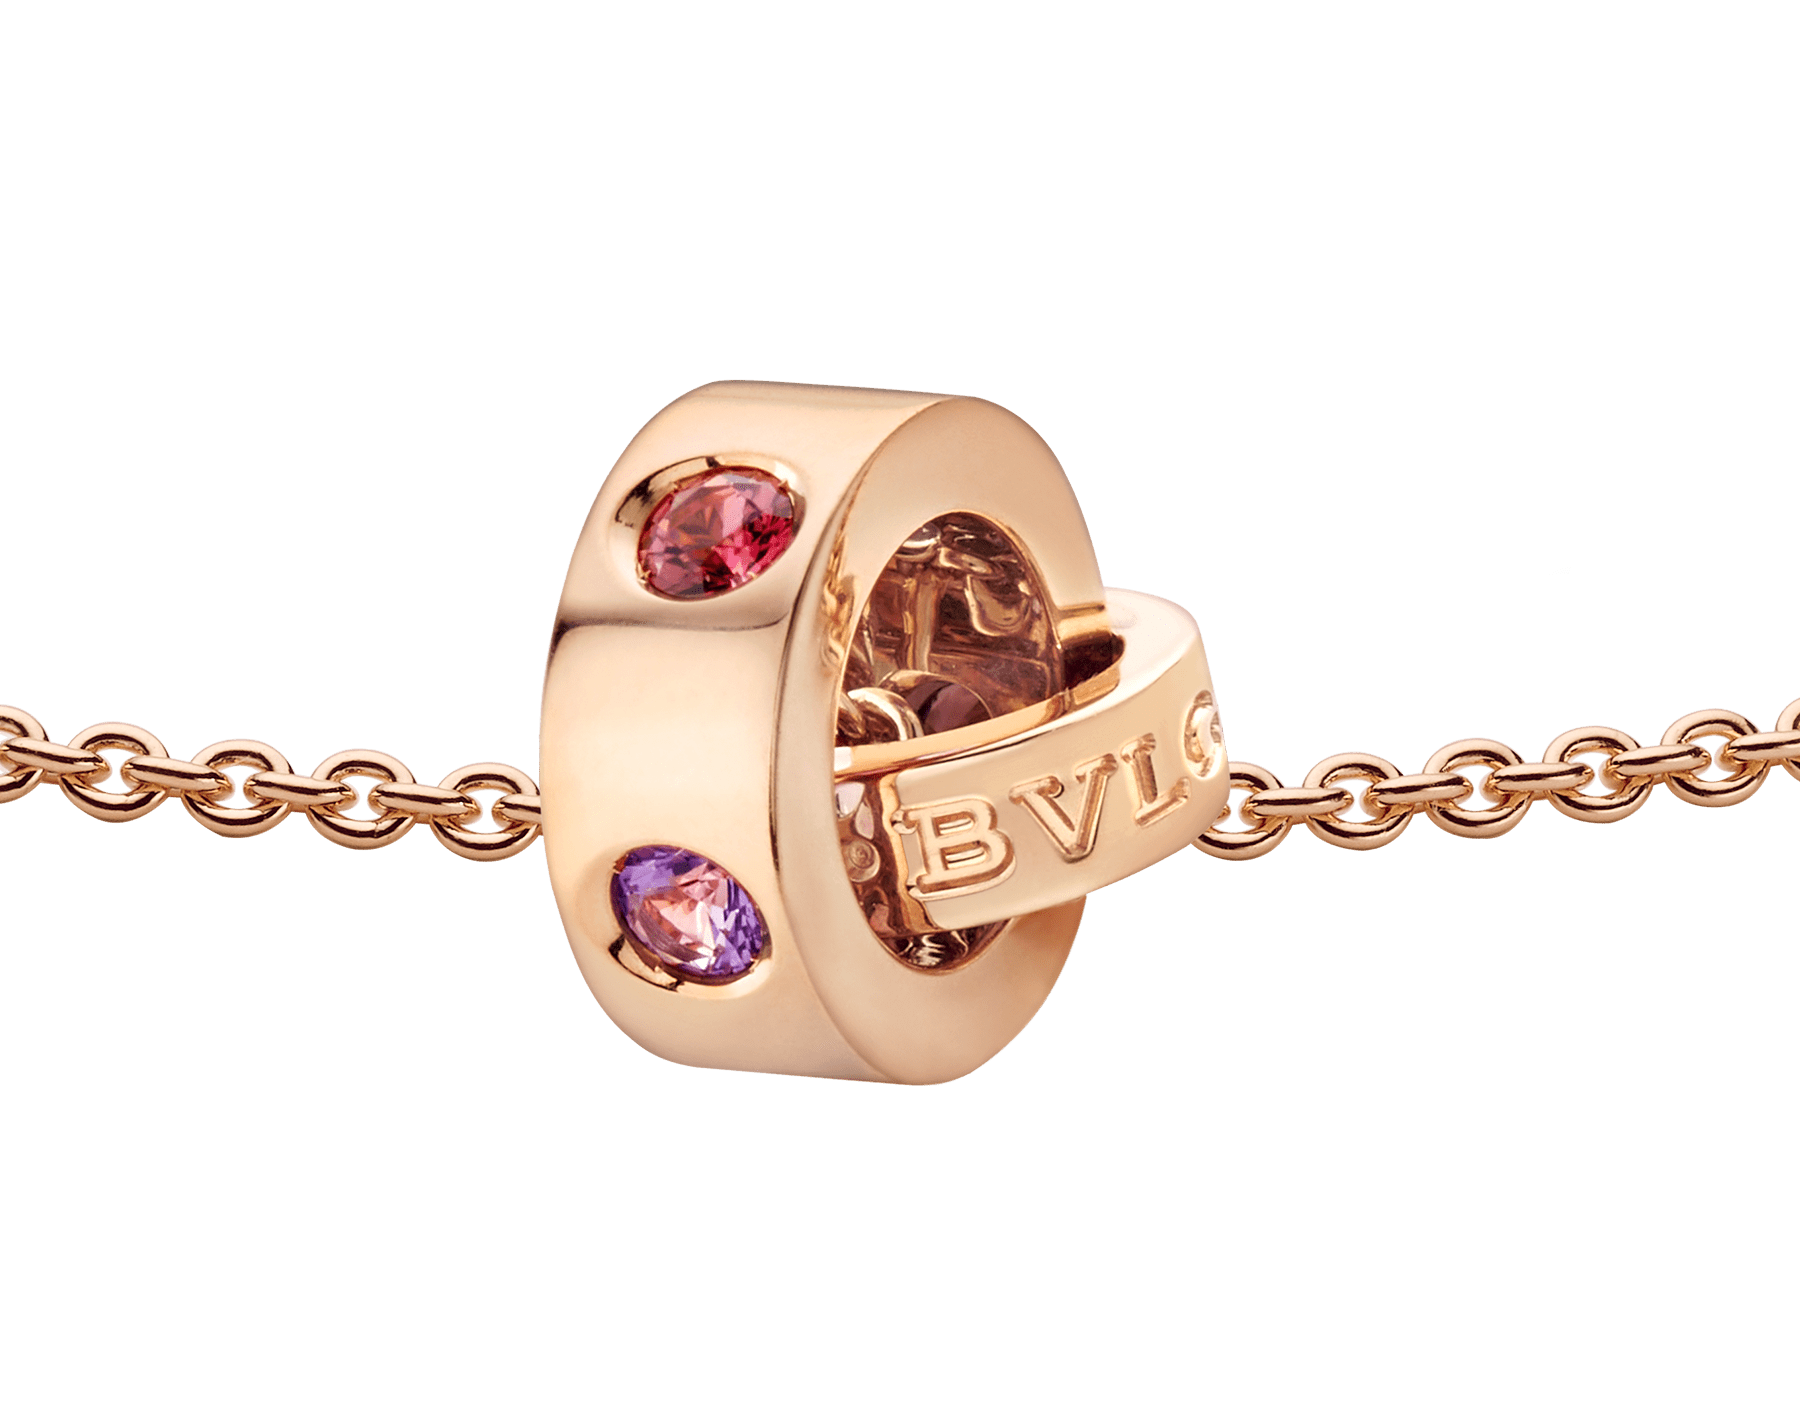 BVLGARI BVLGARI necklace with 18 kt rose gold chain and 18 kt rose gold pendant set with amethysts and pink tourmalines 352618 image 3